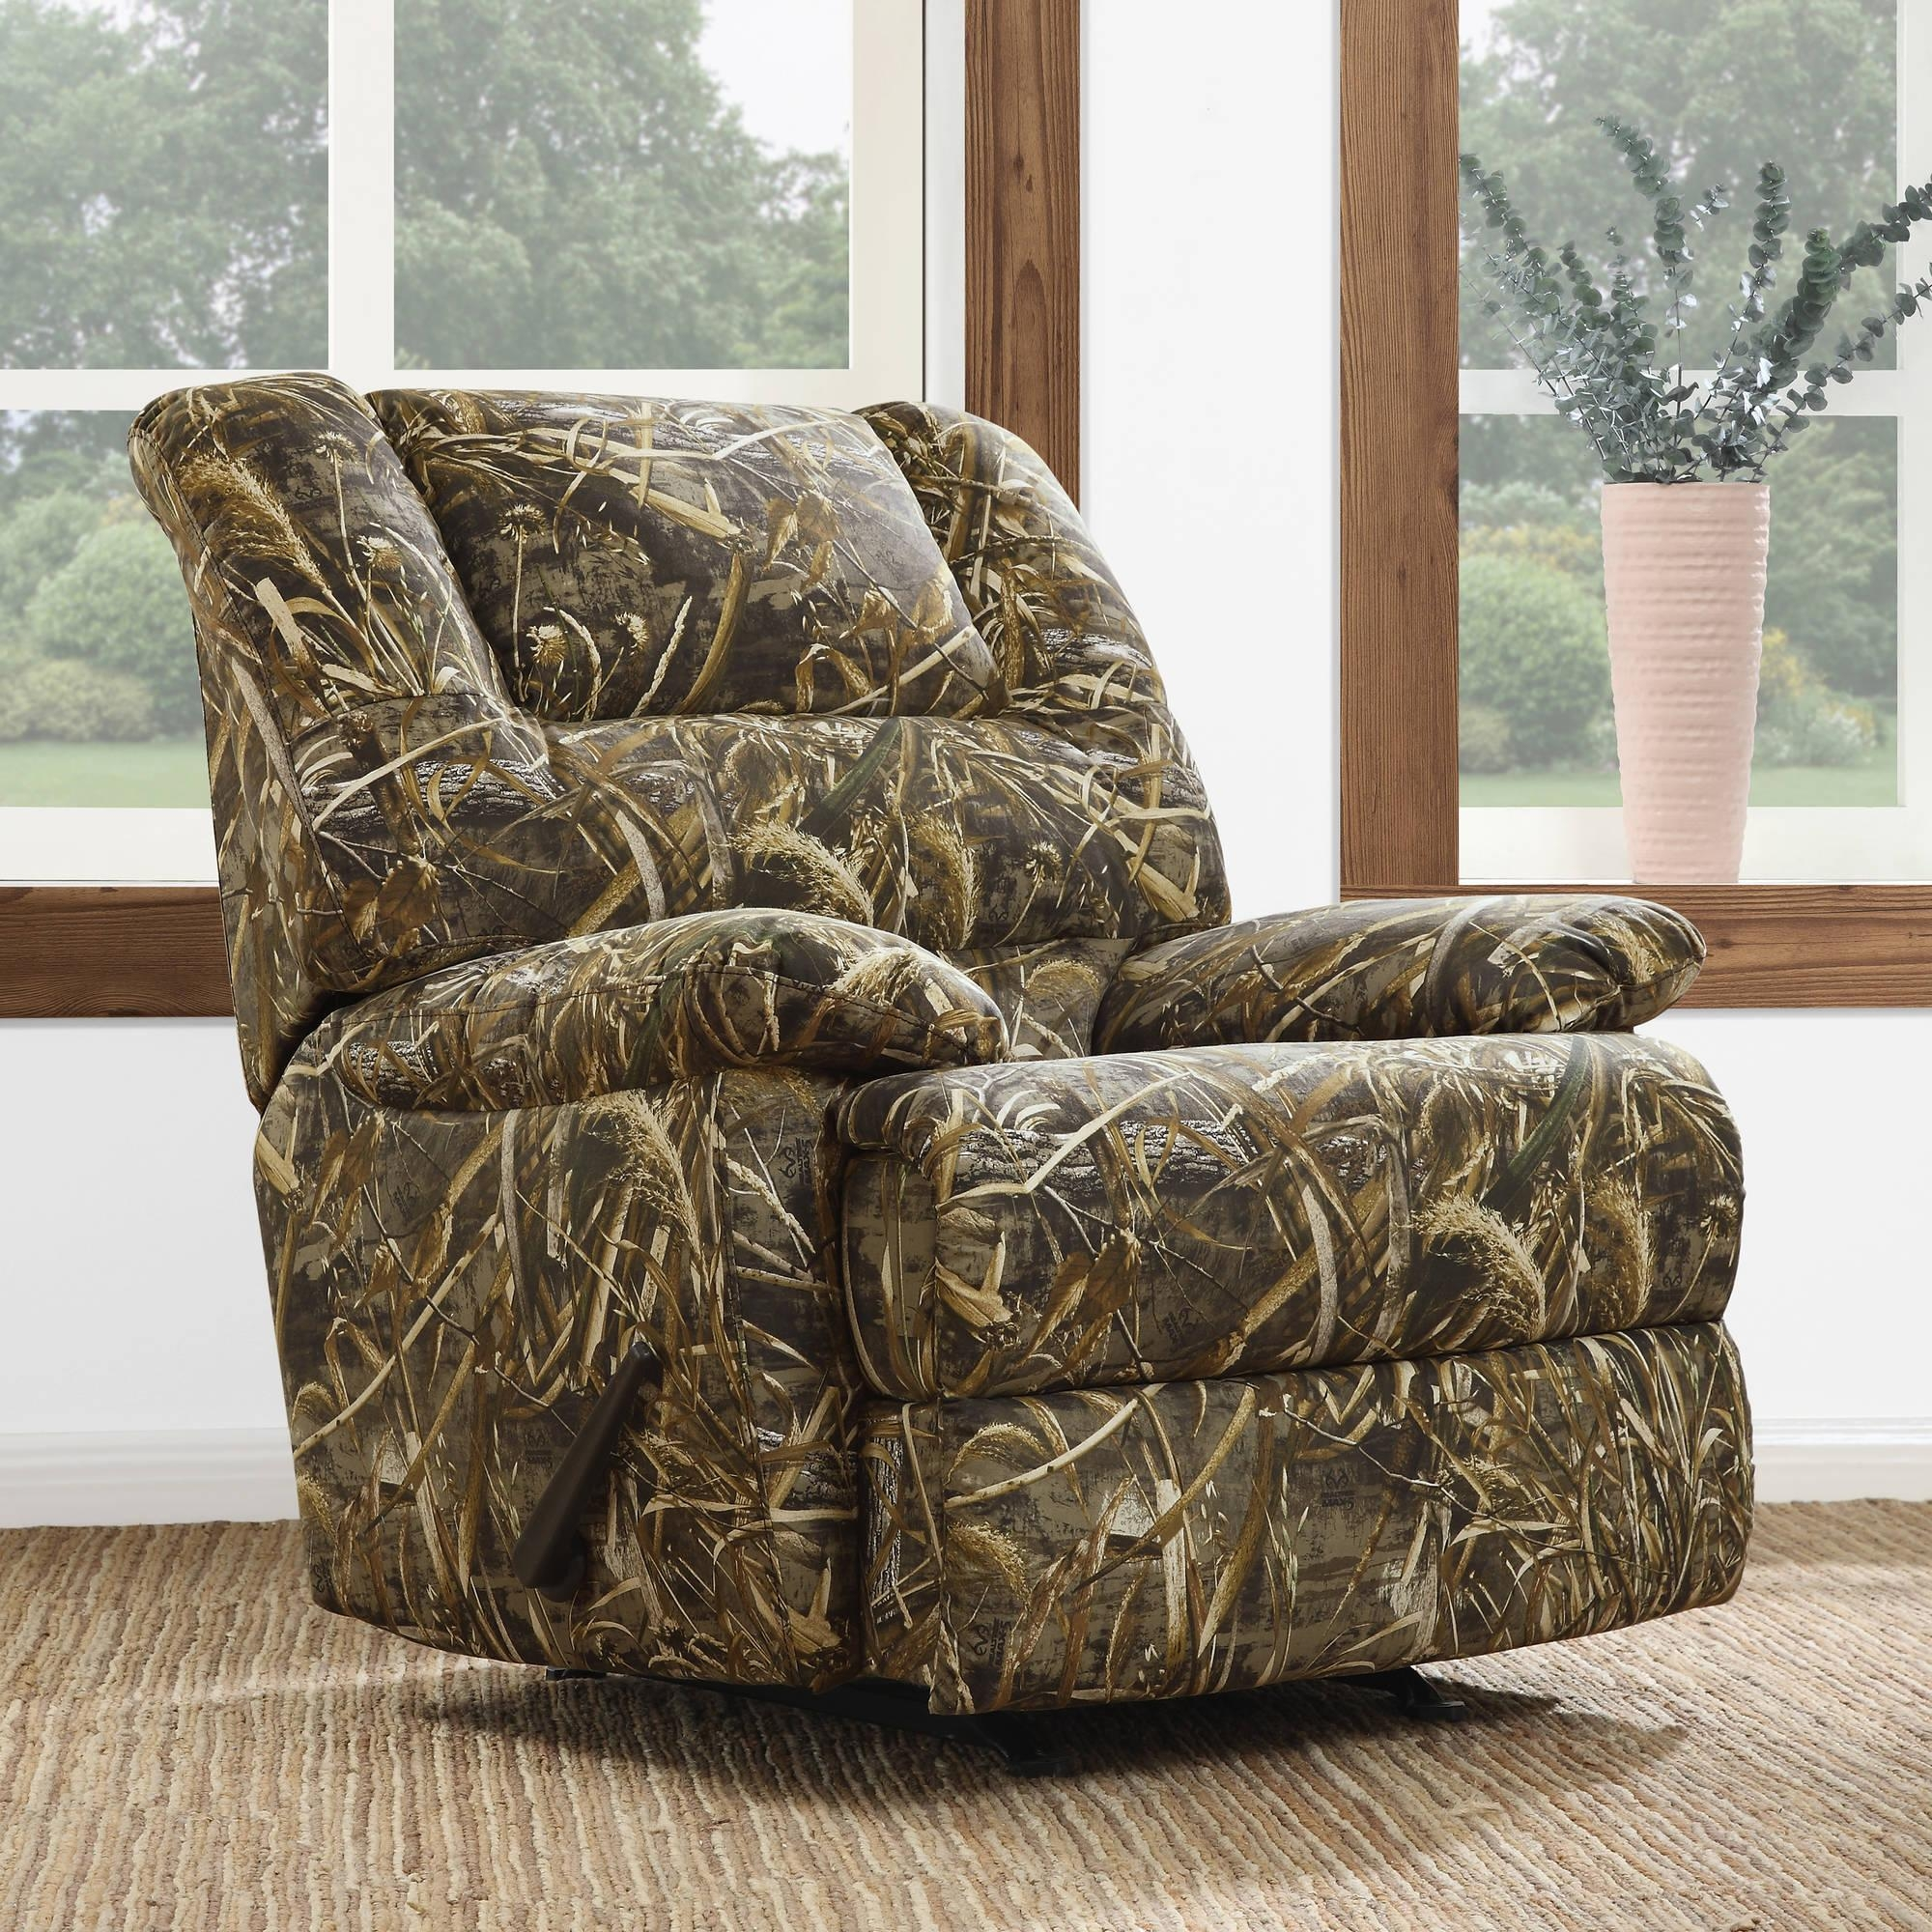 Dorel Living Realtree Camouflage Deluxe Recliner, Camo – Walmart Pertaining To Camo Reclining Sofas (View 13 of 20)